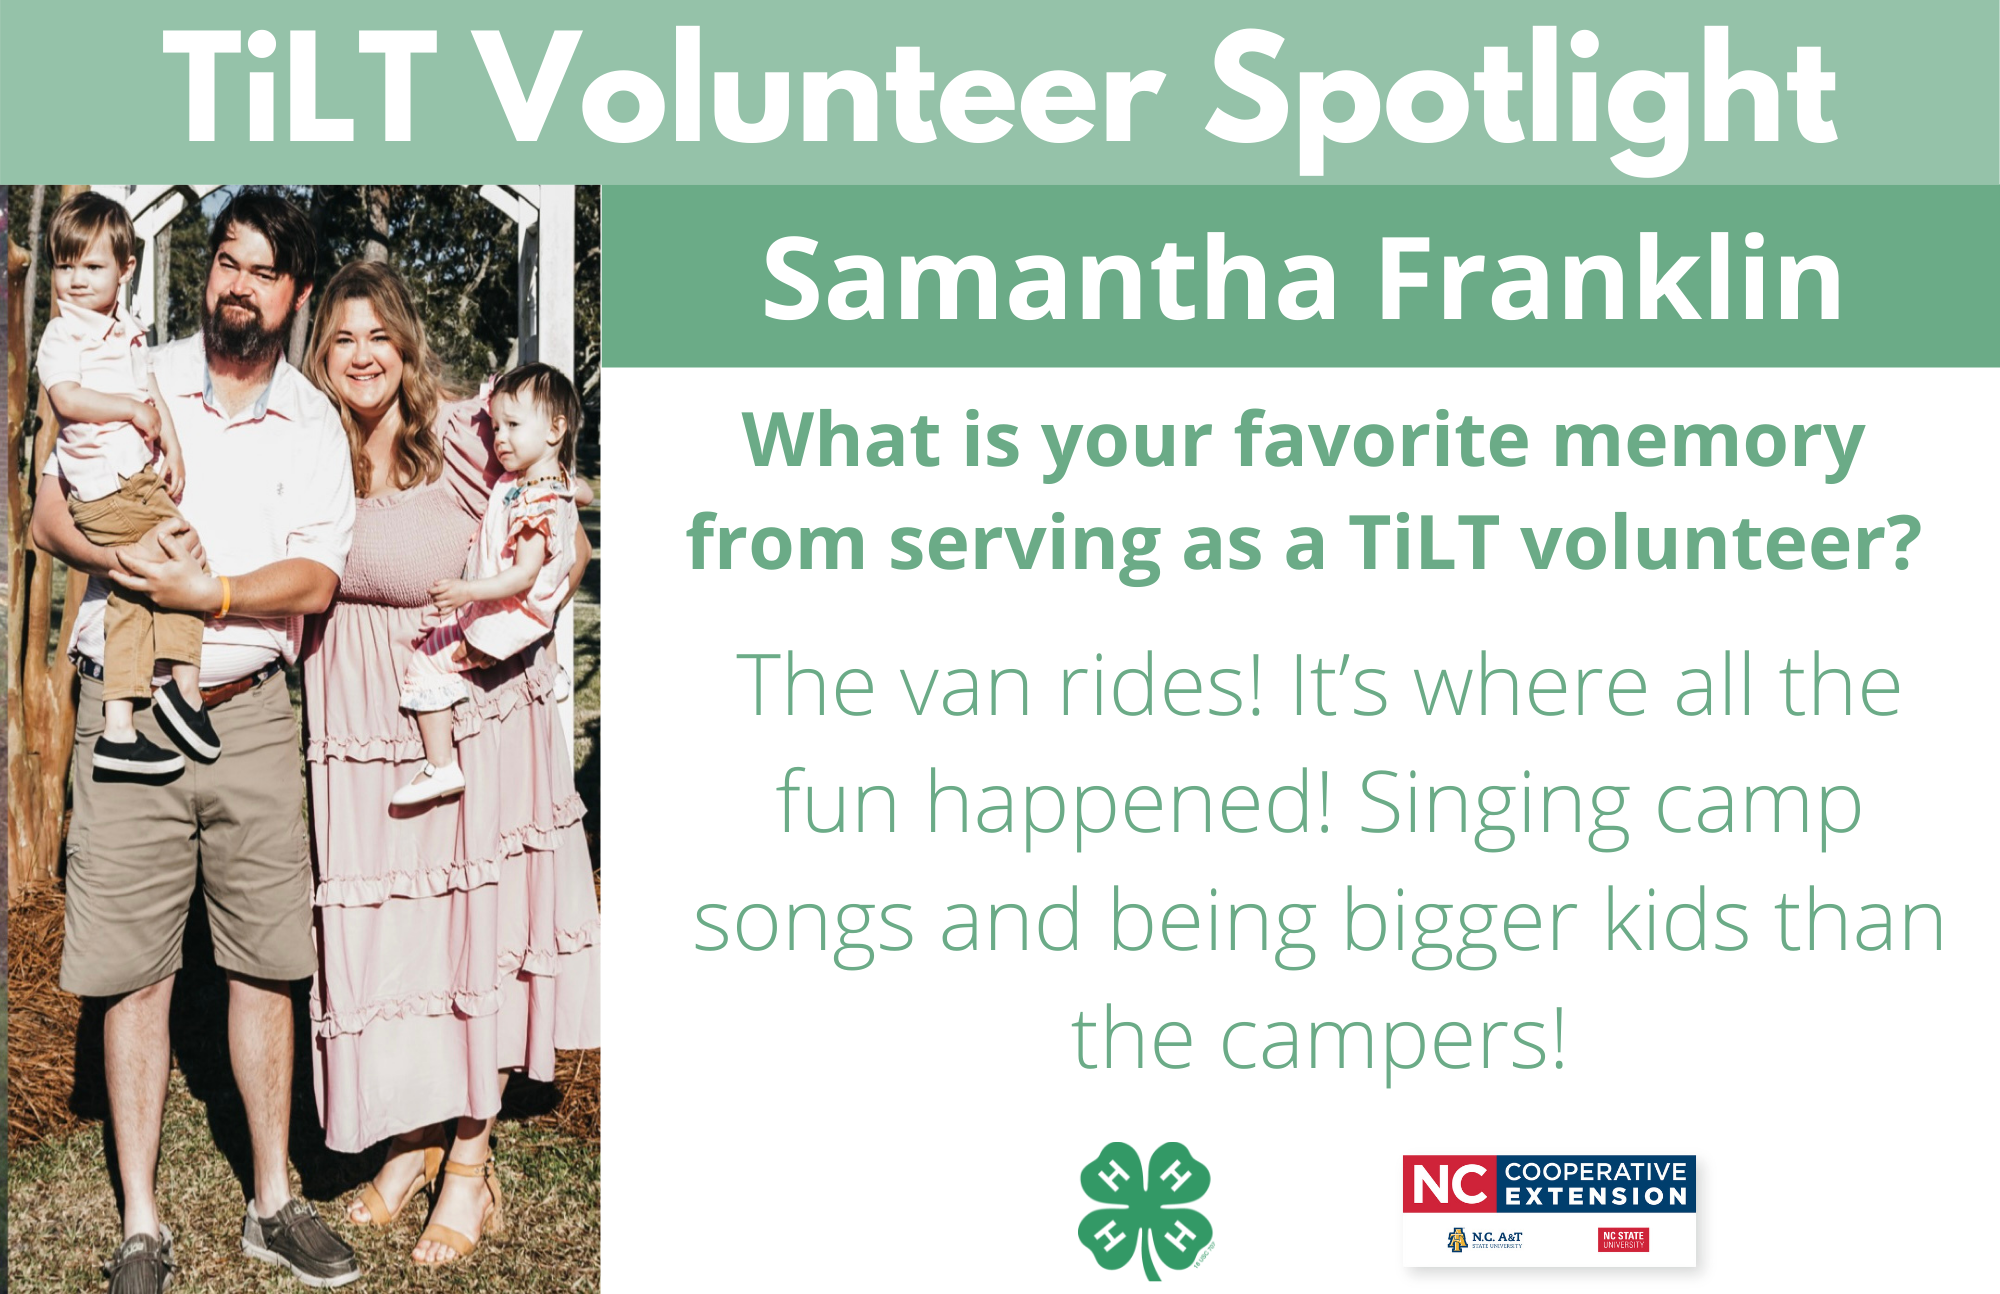 Headshot of Samantha Franklin with following text to the right of image. TiLT Volunteer Spotlight. Samantha Franklin. What is your favorite memory from serving as a TiLT volunteer? The van rides! It's where all the fun happened! Singing camp songs and being bigger kids than the campers!